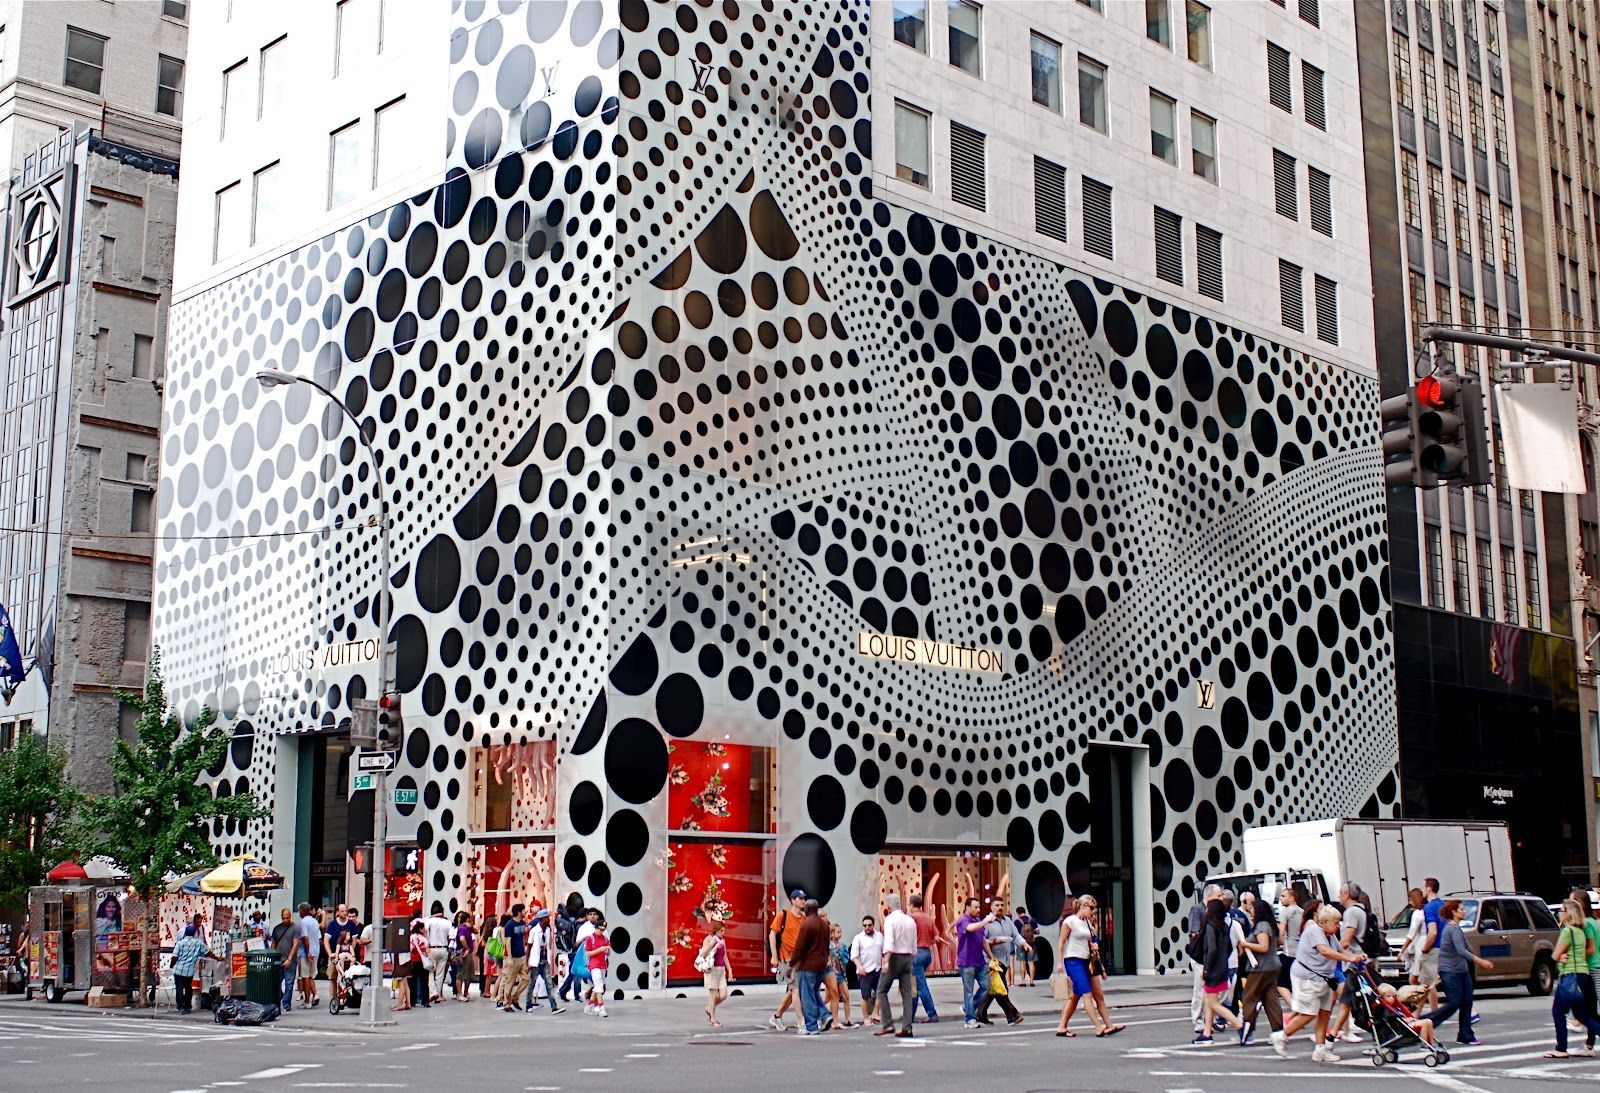 4d5b2c544a1c NYC ♥ NYC  Louis Vuitton Collaborates With Artist Yayoi Kusama - Manhattan  Flagship Store Facade and Window Displays On Fifth Avenue Go Polka Dots